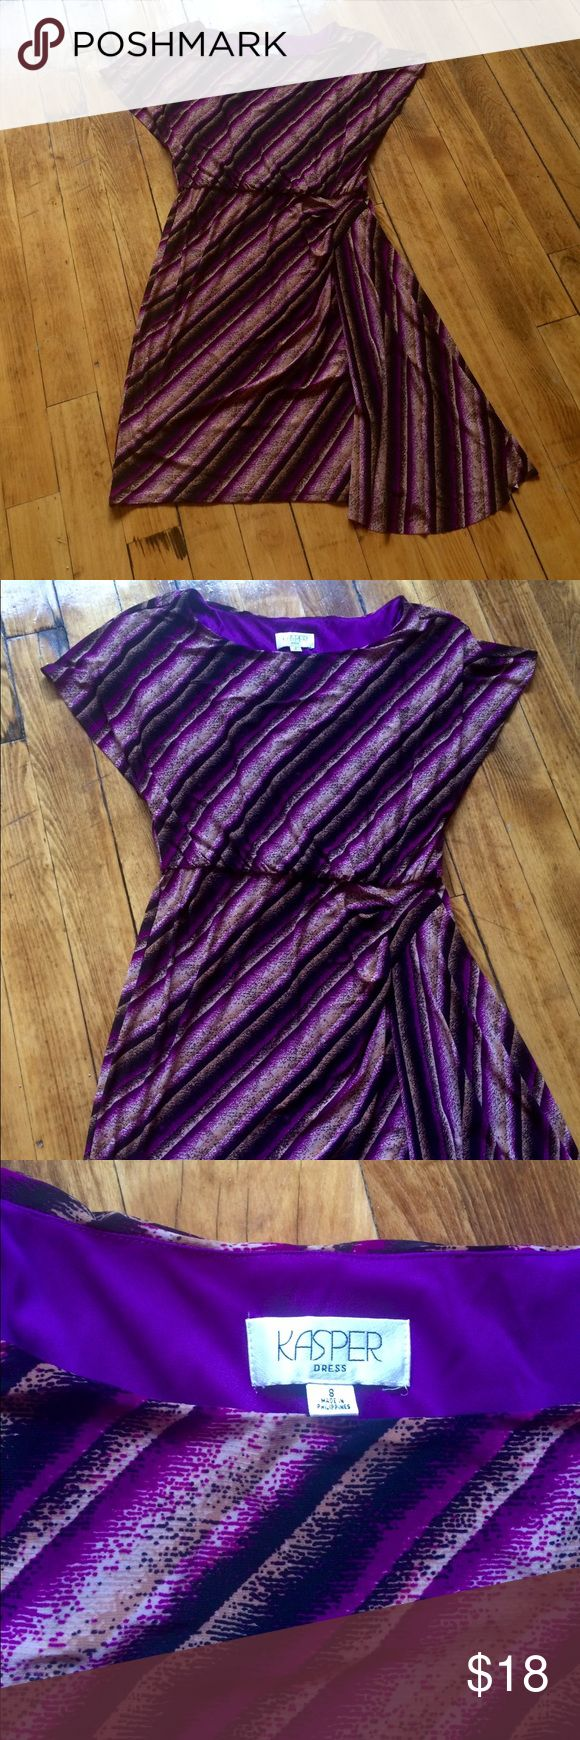 Perfect summer work dress Purple work dress, Kasper brand size 8 Kasper Dresses Midi